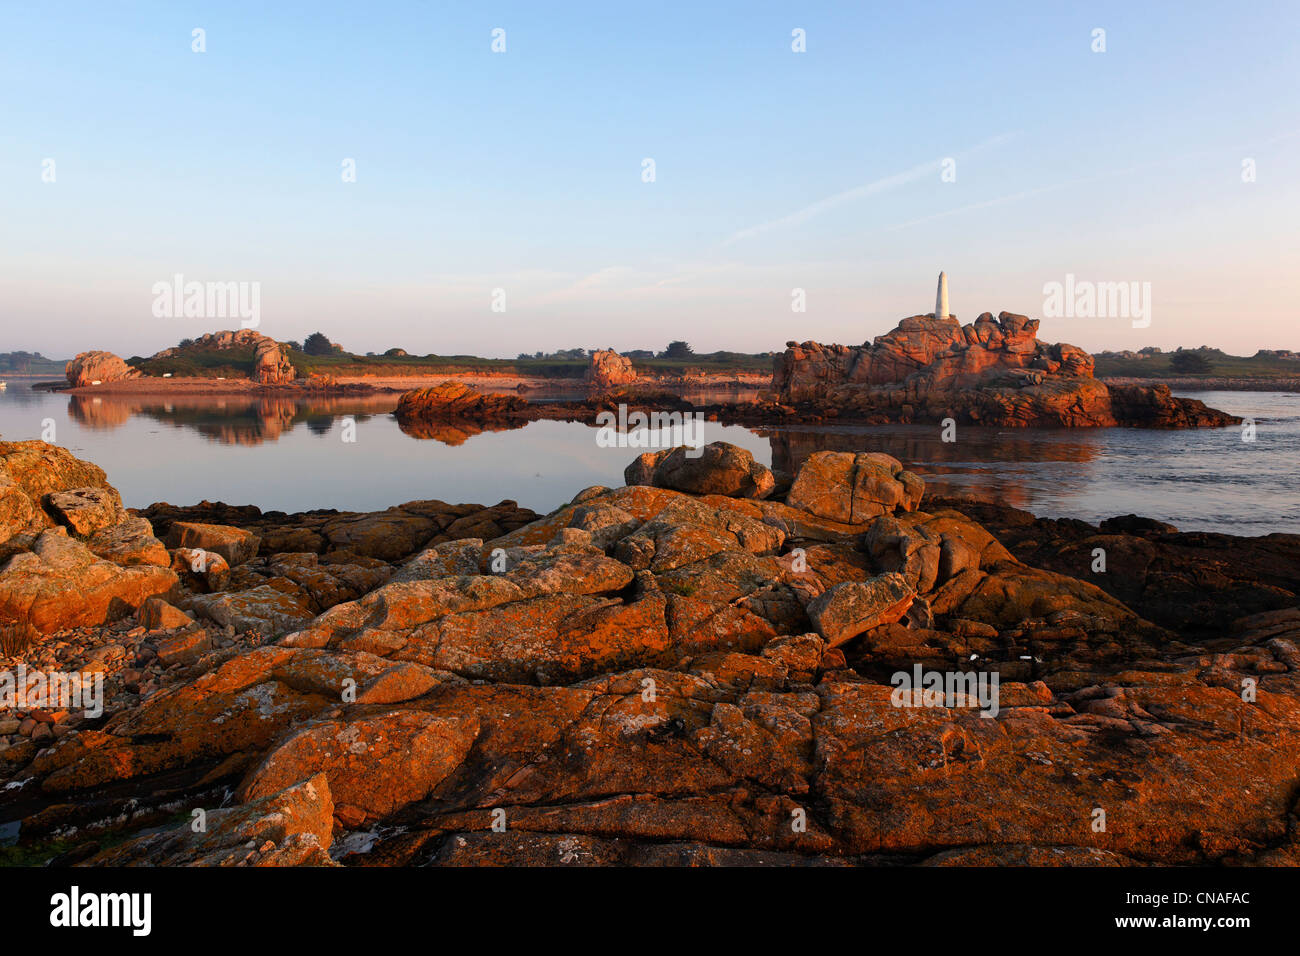 France, Cotes d'Armor, Brehat island, ar Morbic island - Stock Image